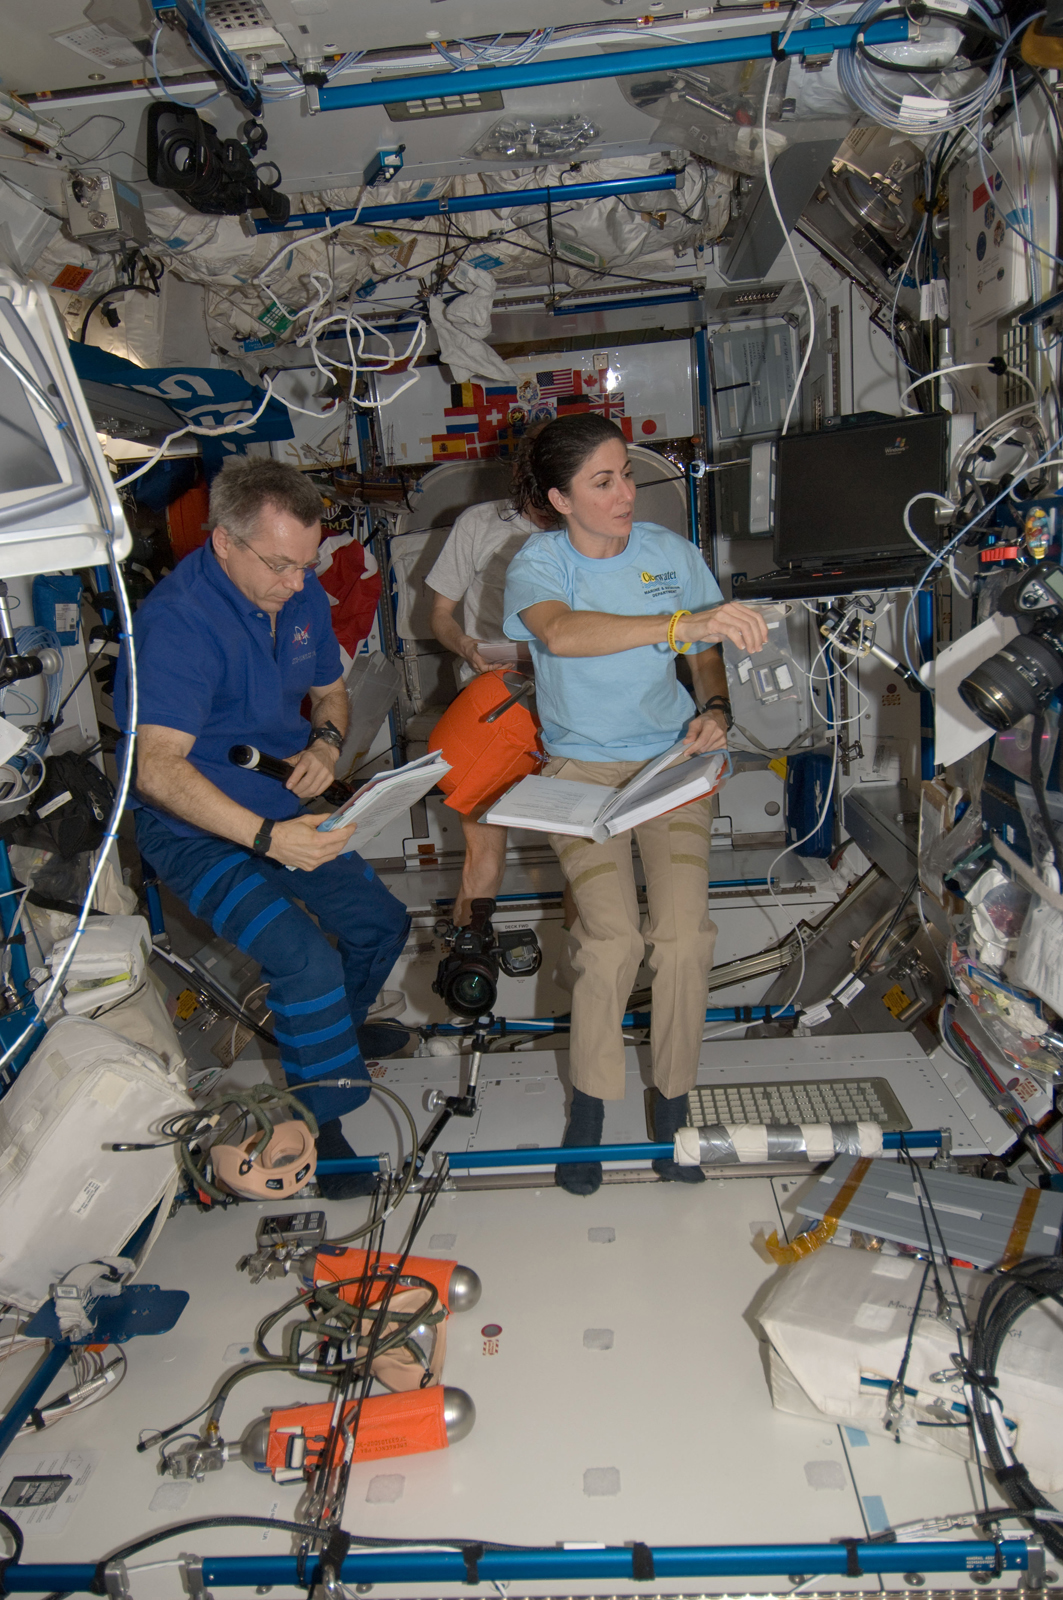 Canadian Space Agency astronaut Robert Thirsk and NASA astronaut Nicole Stott, both Expedition 21 flight engineers; along with European Space Agency astronaut Frank De Winne (background), commander, work in the Harmony node of the ISS. Photo taken October